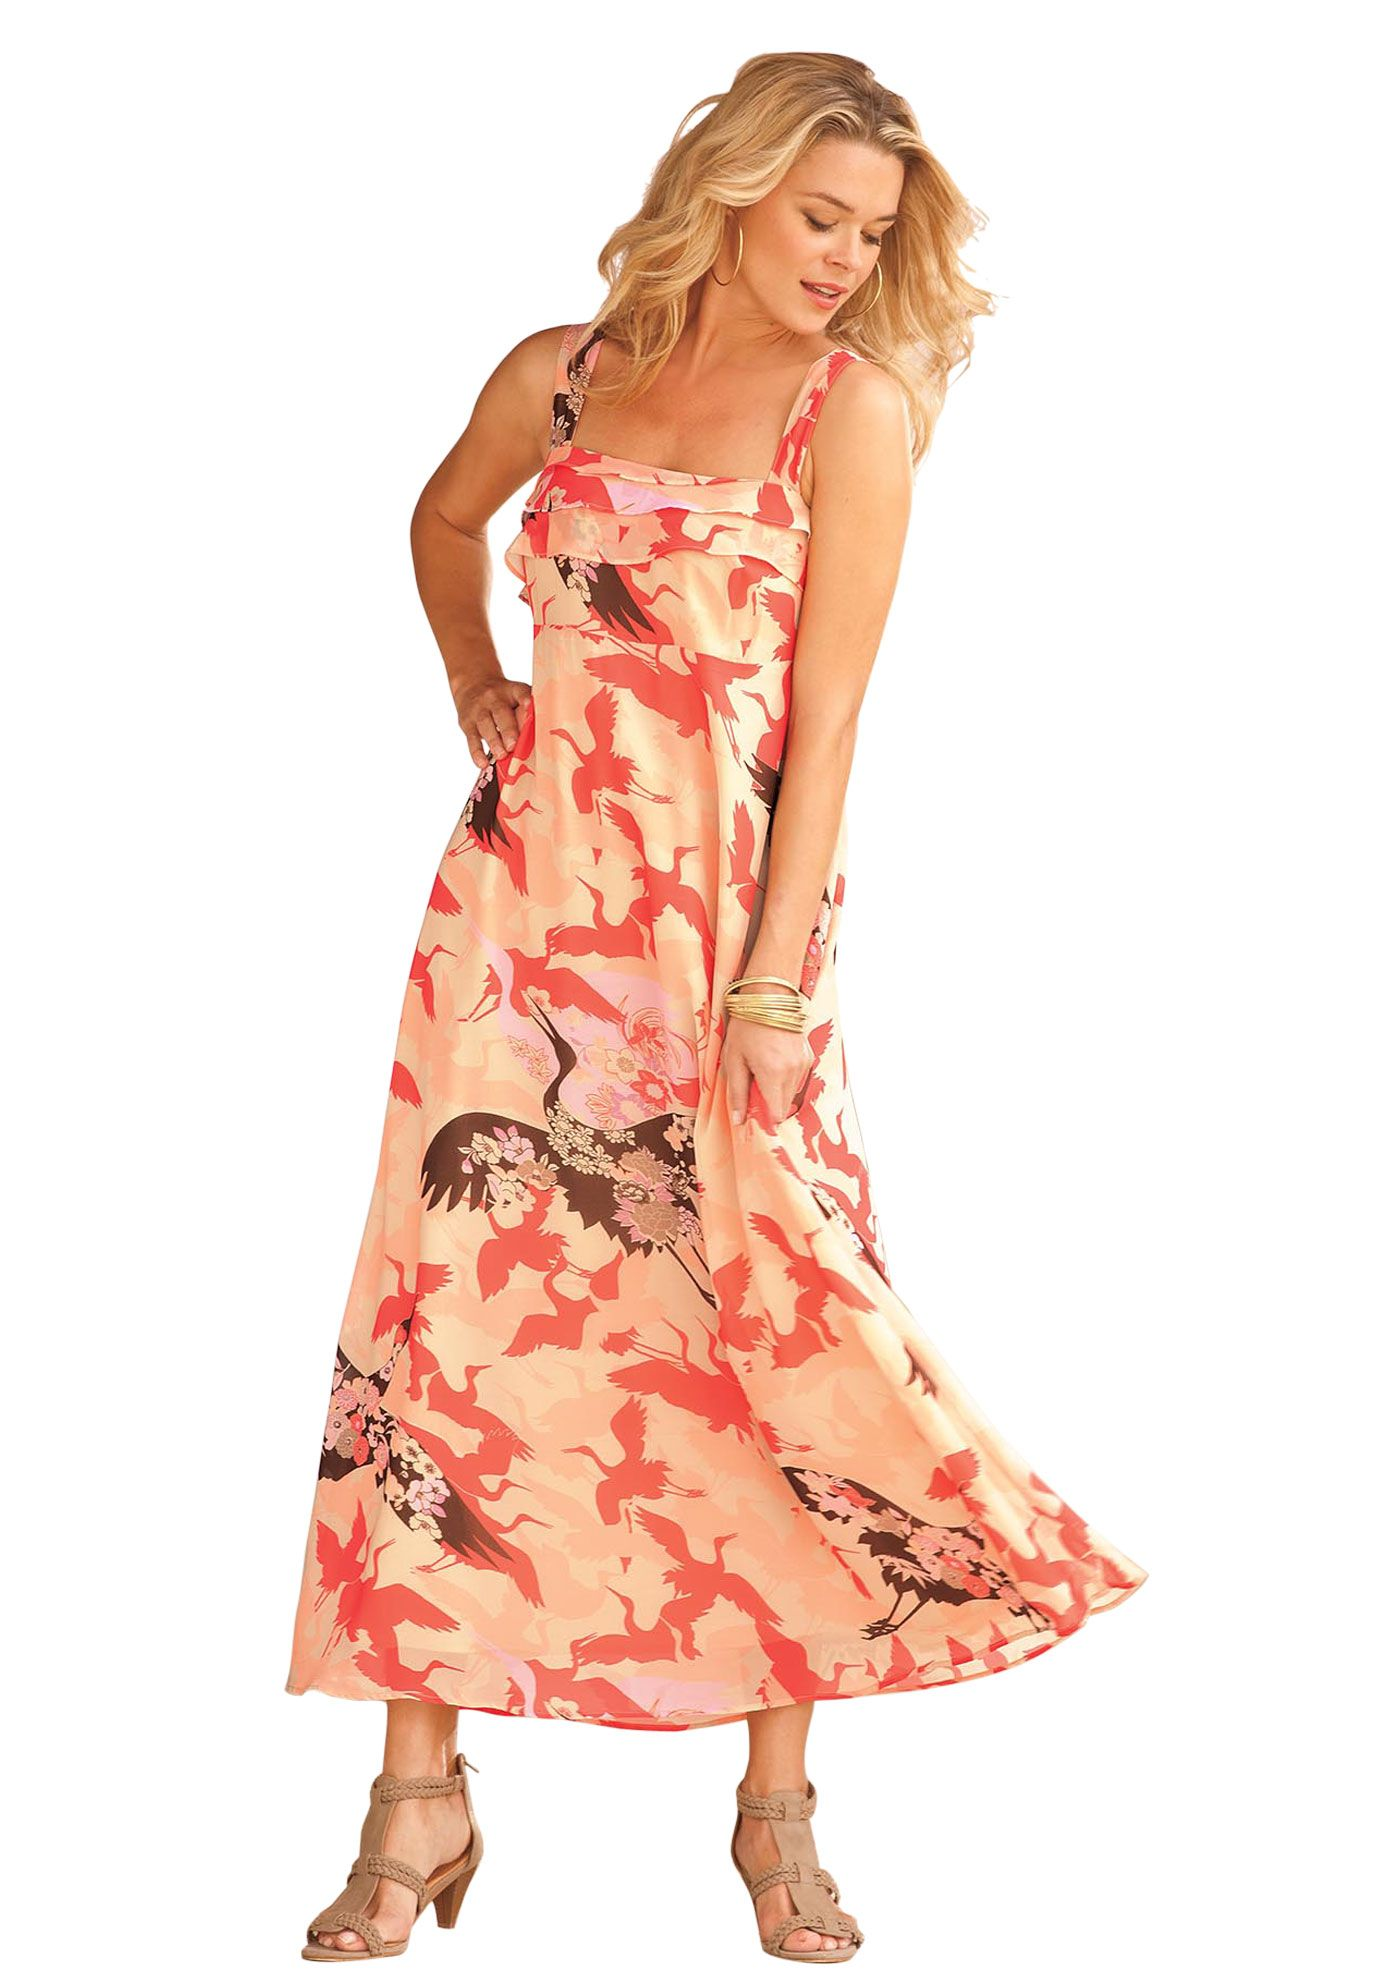 This printed plus size dress with flattering empire waist glides